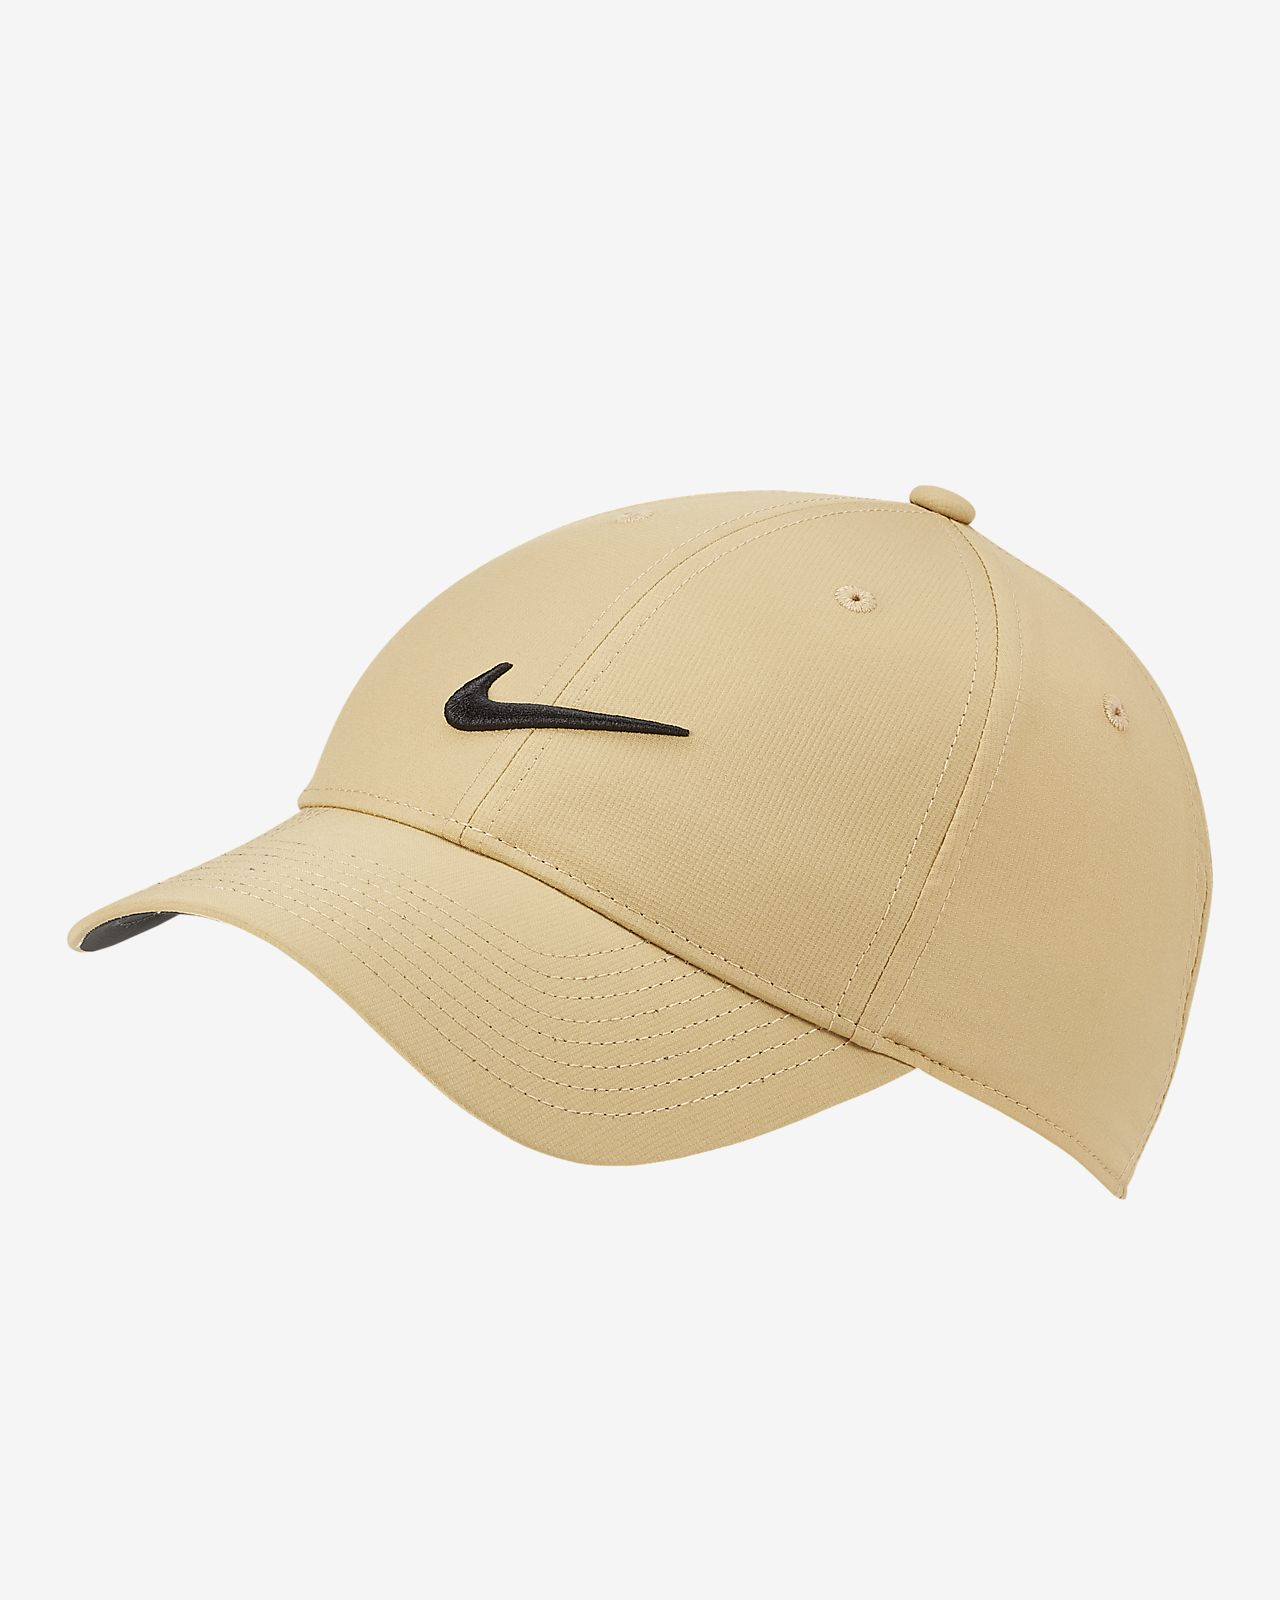 f5311c7ef10 Nike Legacy 91 Adjustable Golf Hat. Nike.com